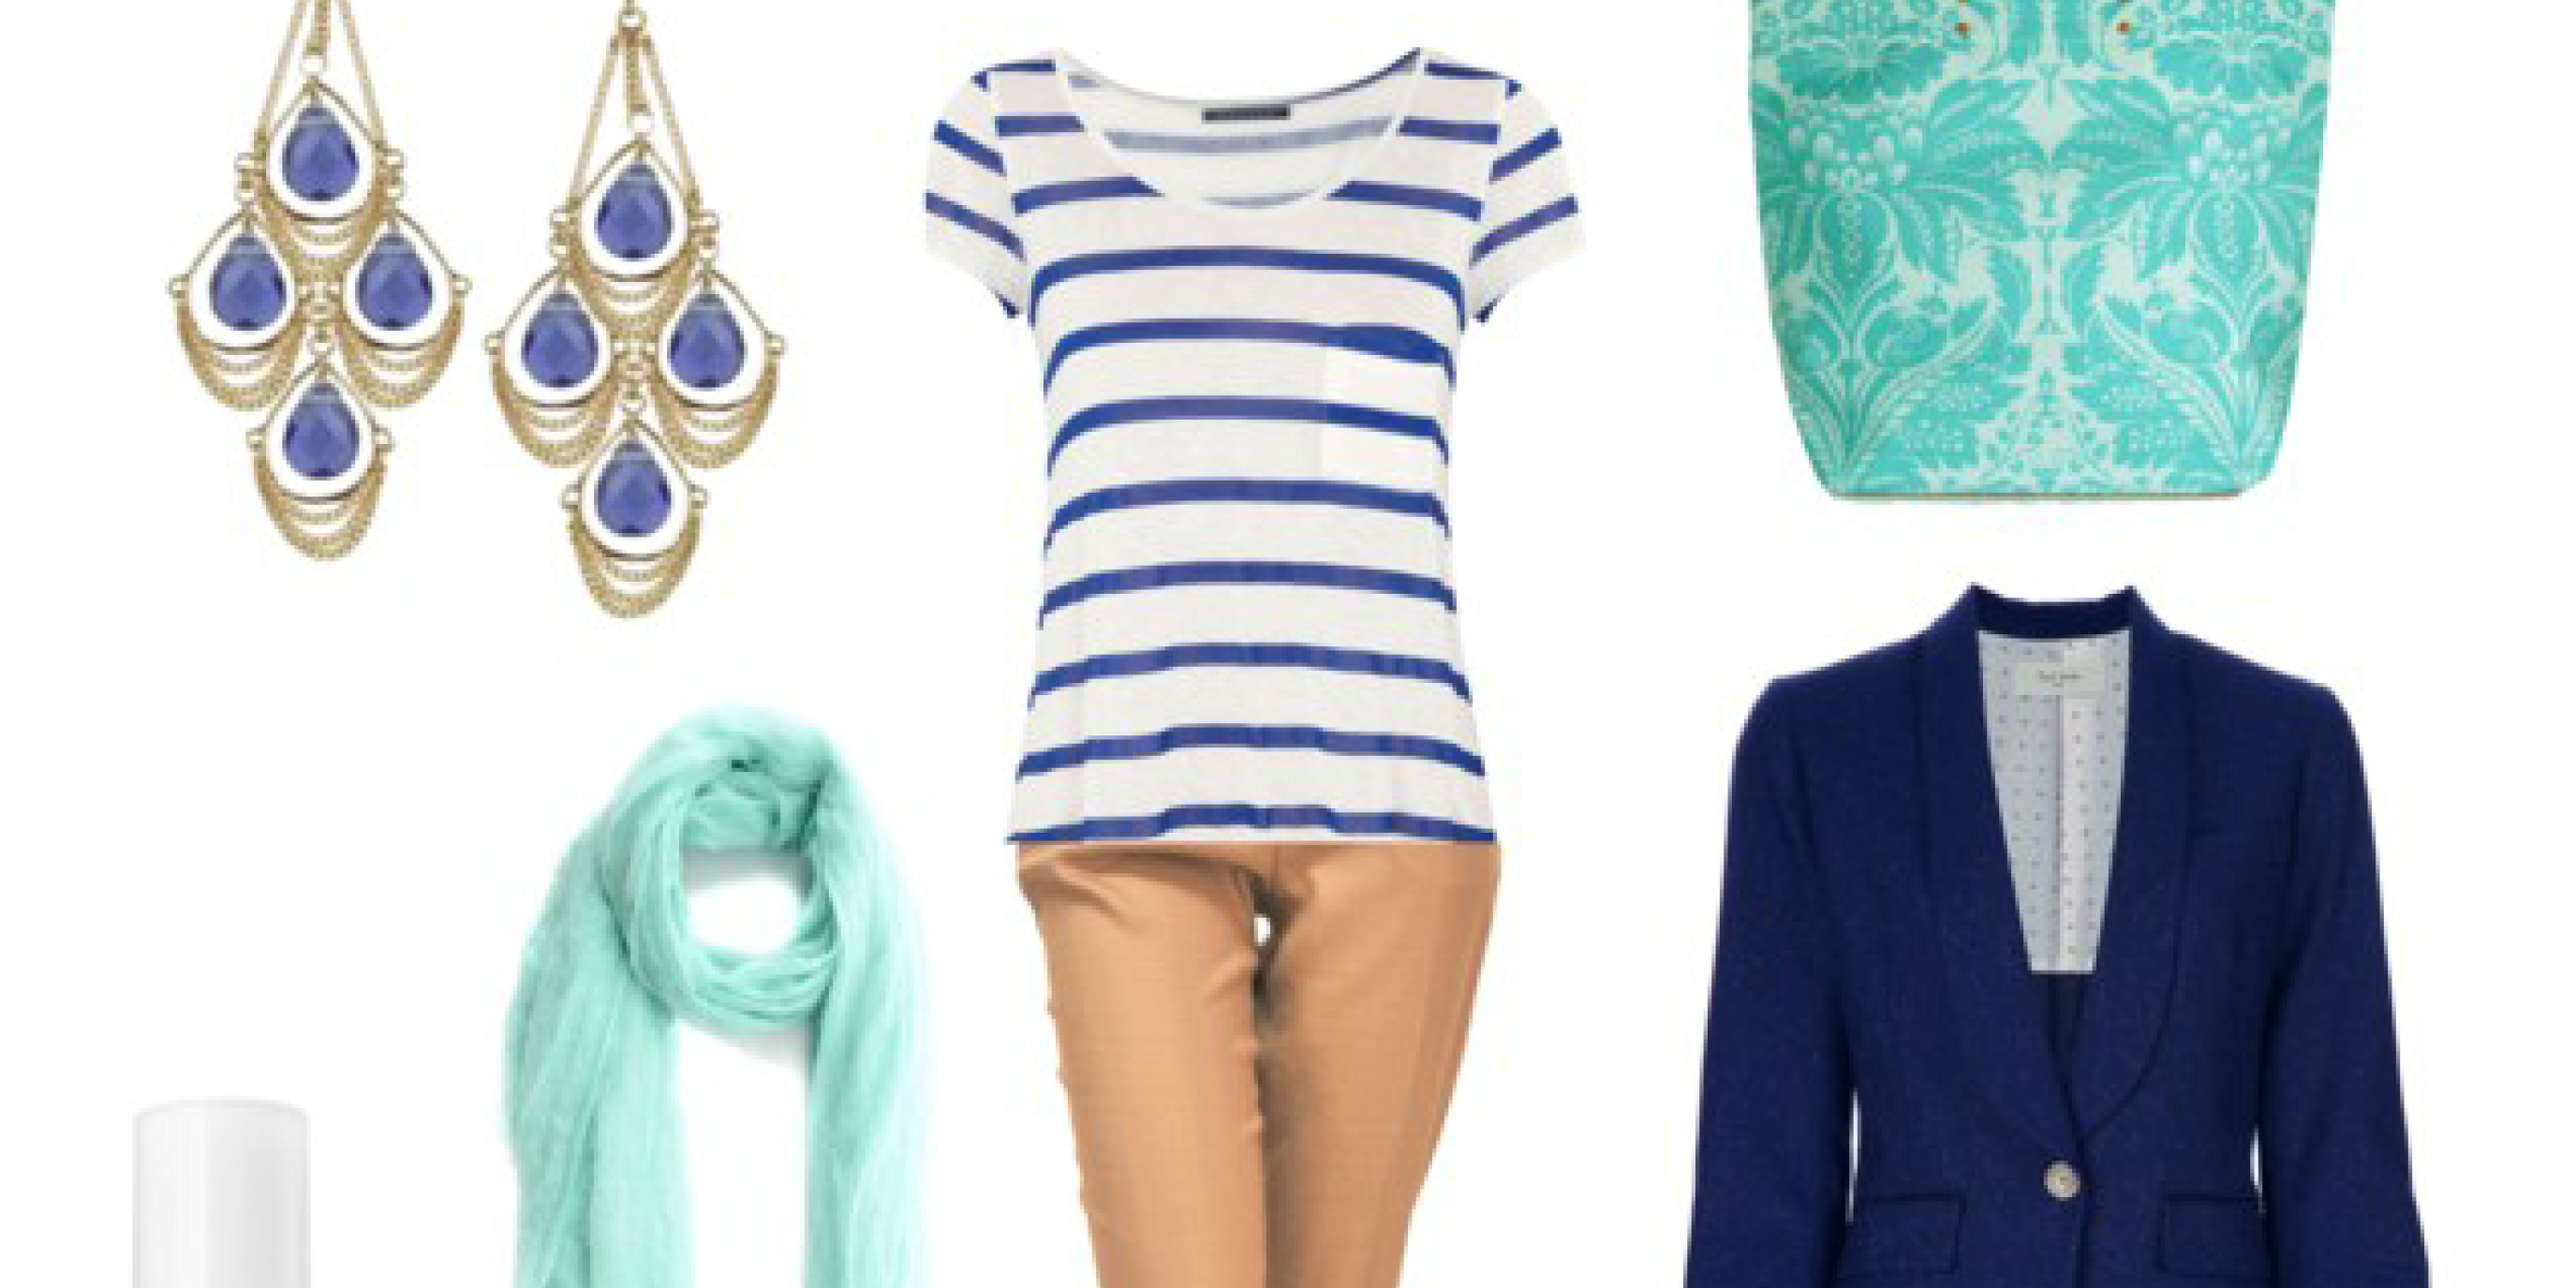 Featured Images - Fashion Friday8